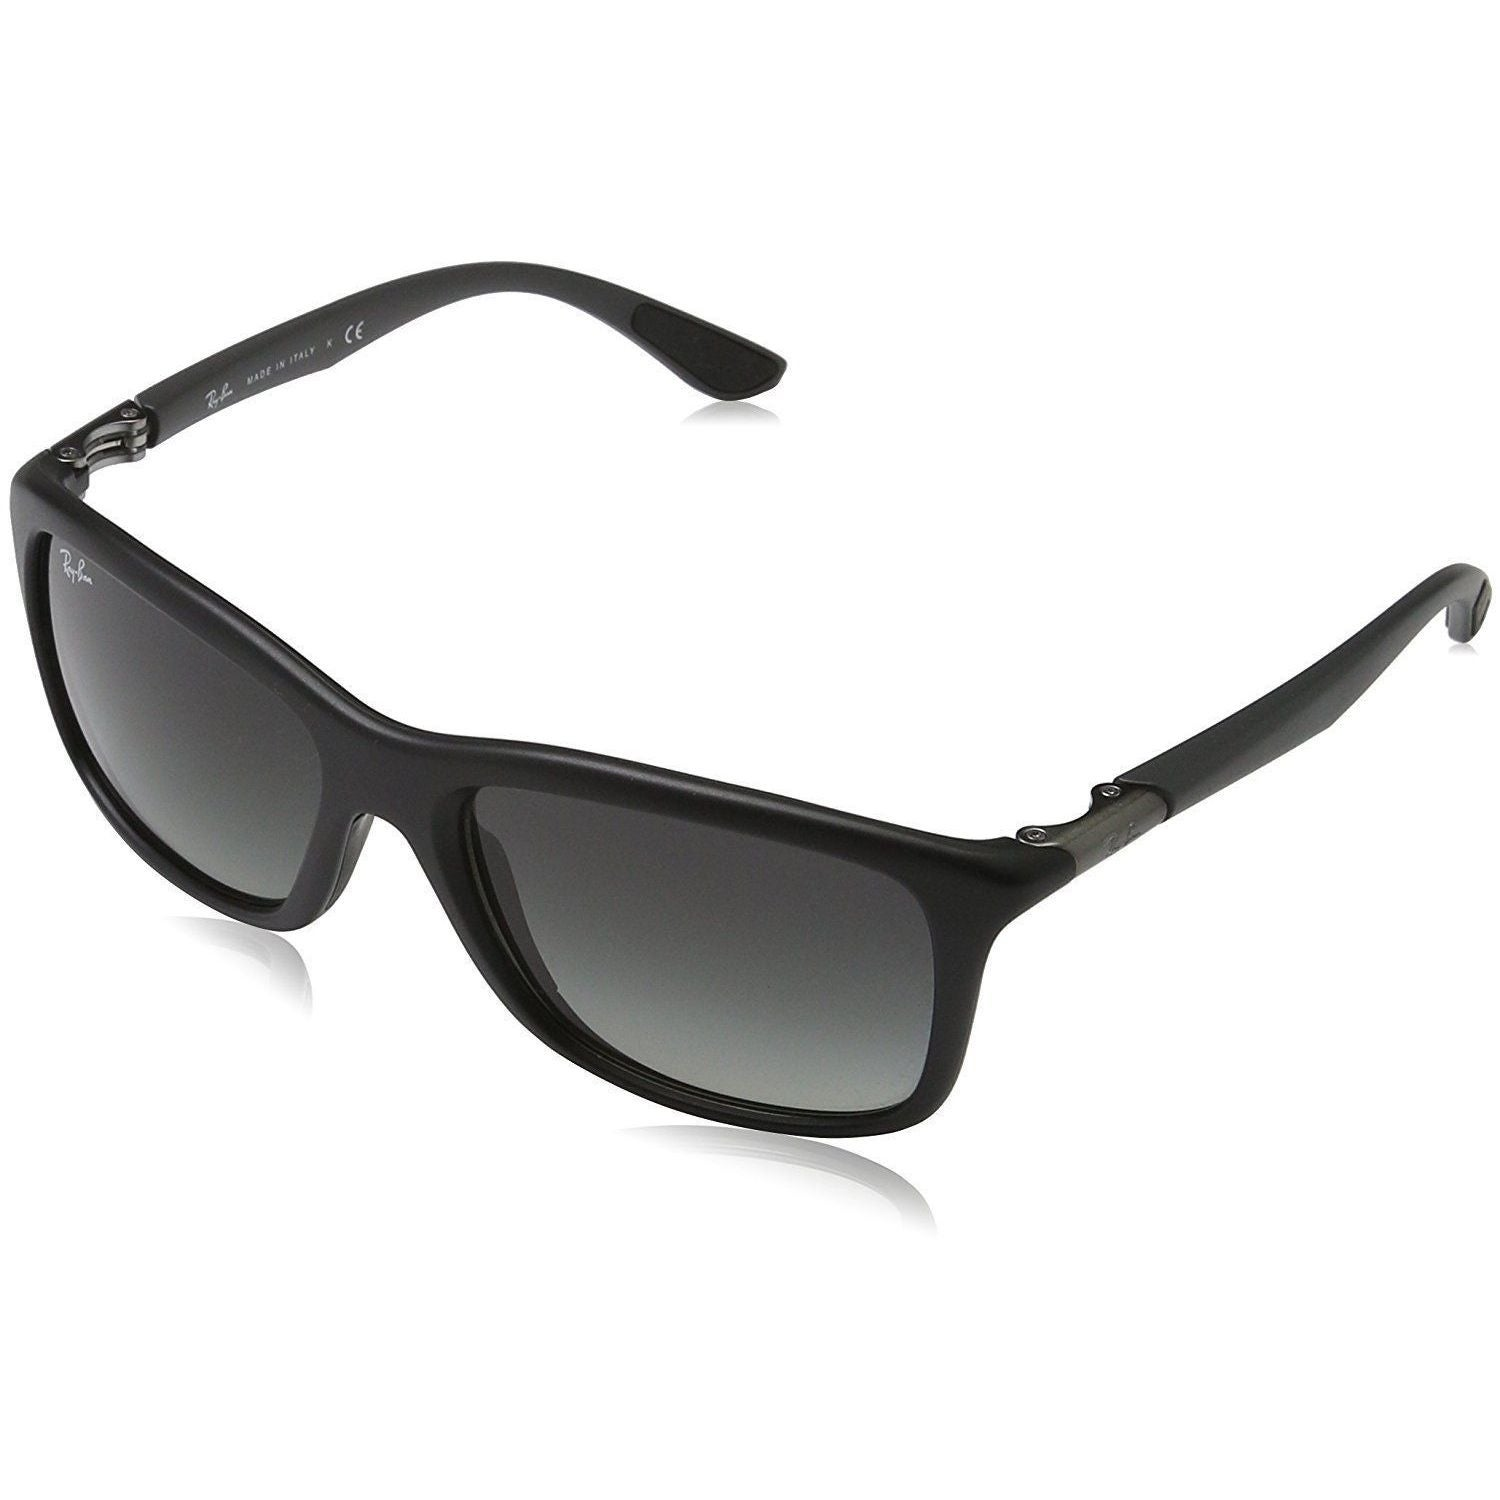 77c575f66a0ba Shop Ray-Ban RB8352 622011 Men s Black Grey Frame Grey Gradient Lens  Sunglasses - Free Shipping Today - Overstock - 15287588